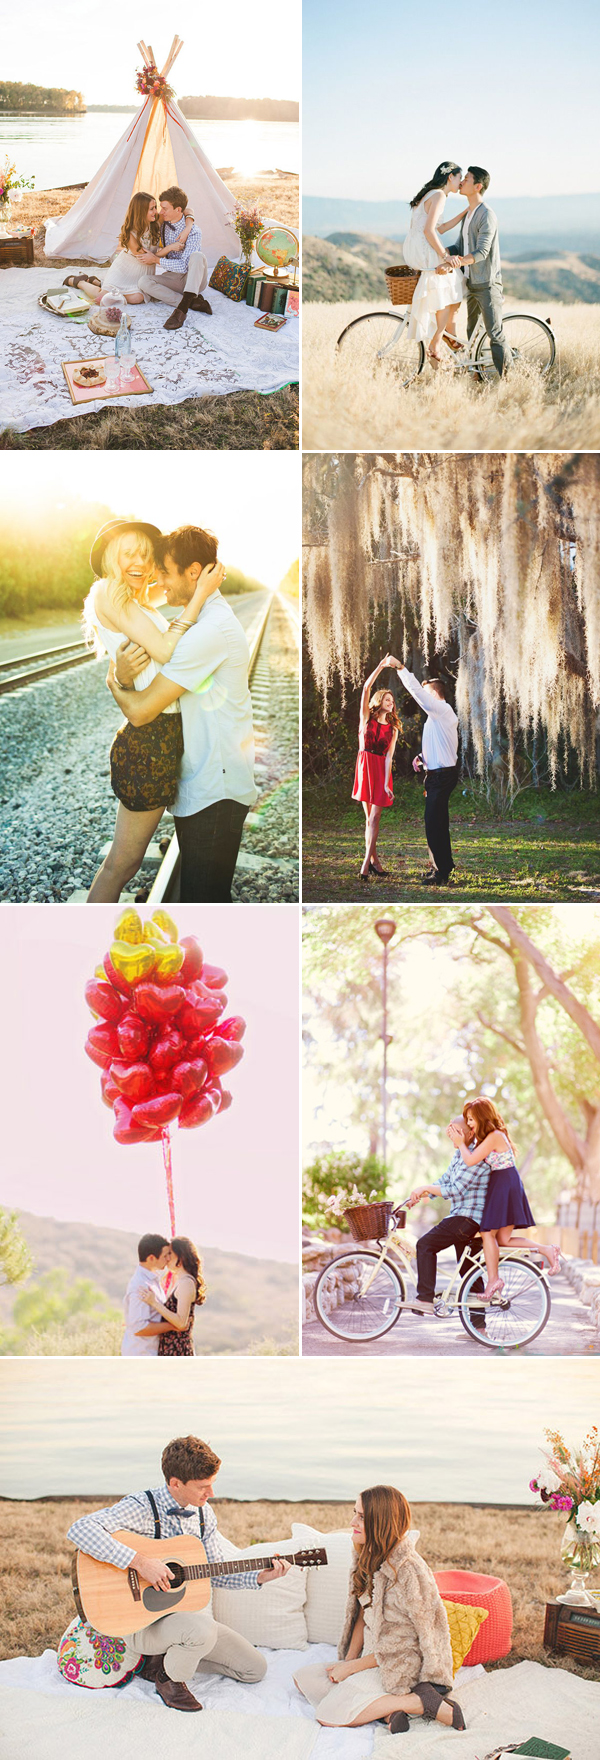 Show Your Love 35 Sweet Valentine S Day Couple Photo Ideas Praise Wedding